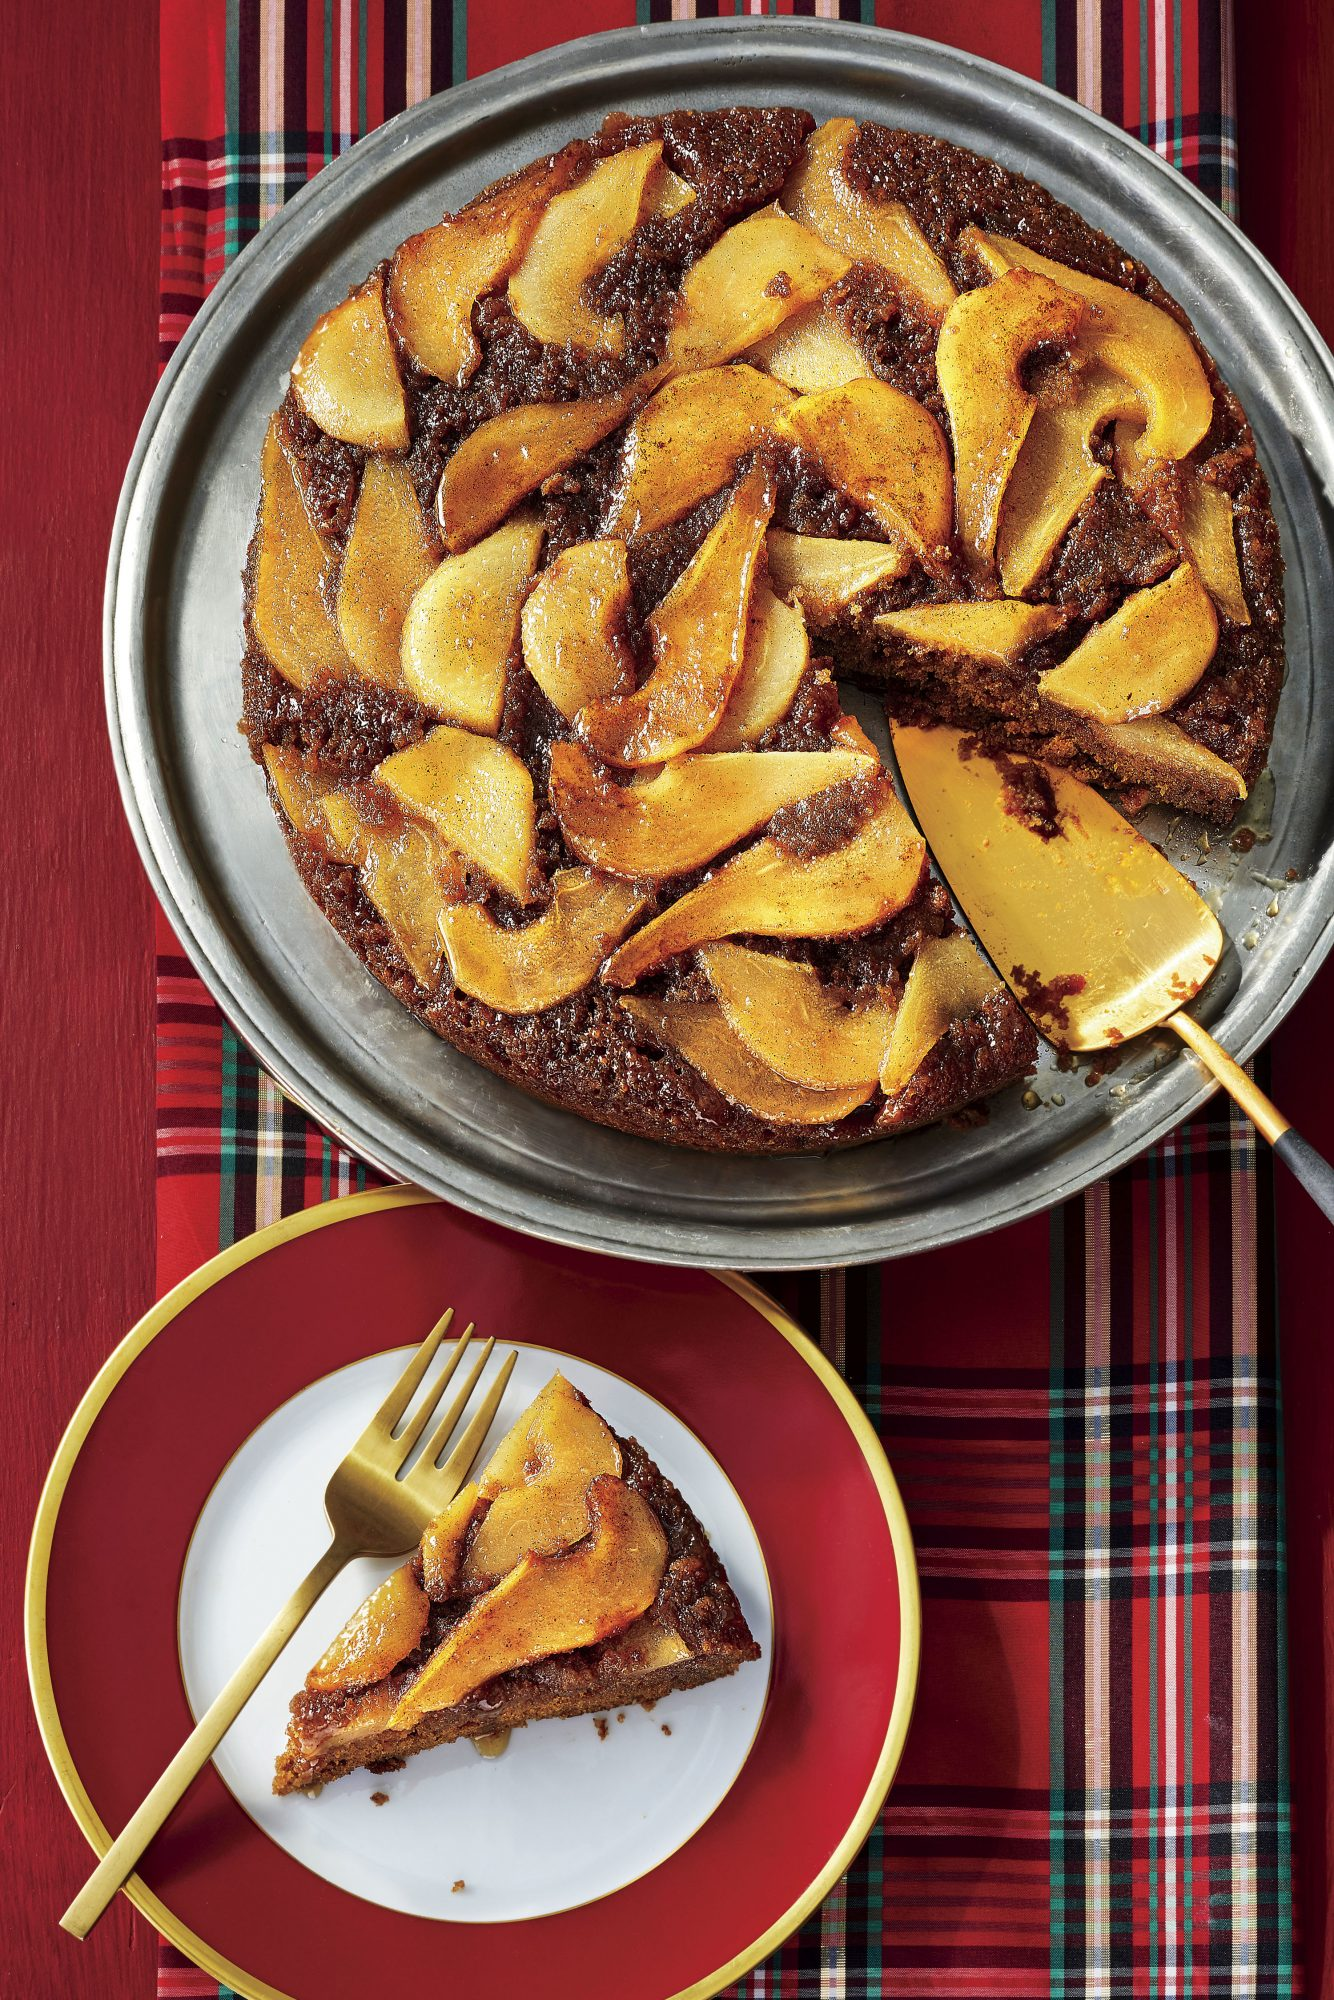 Gingerbread-and-Pear Upside-Down Cake